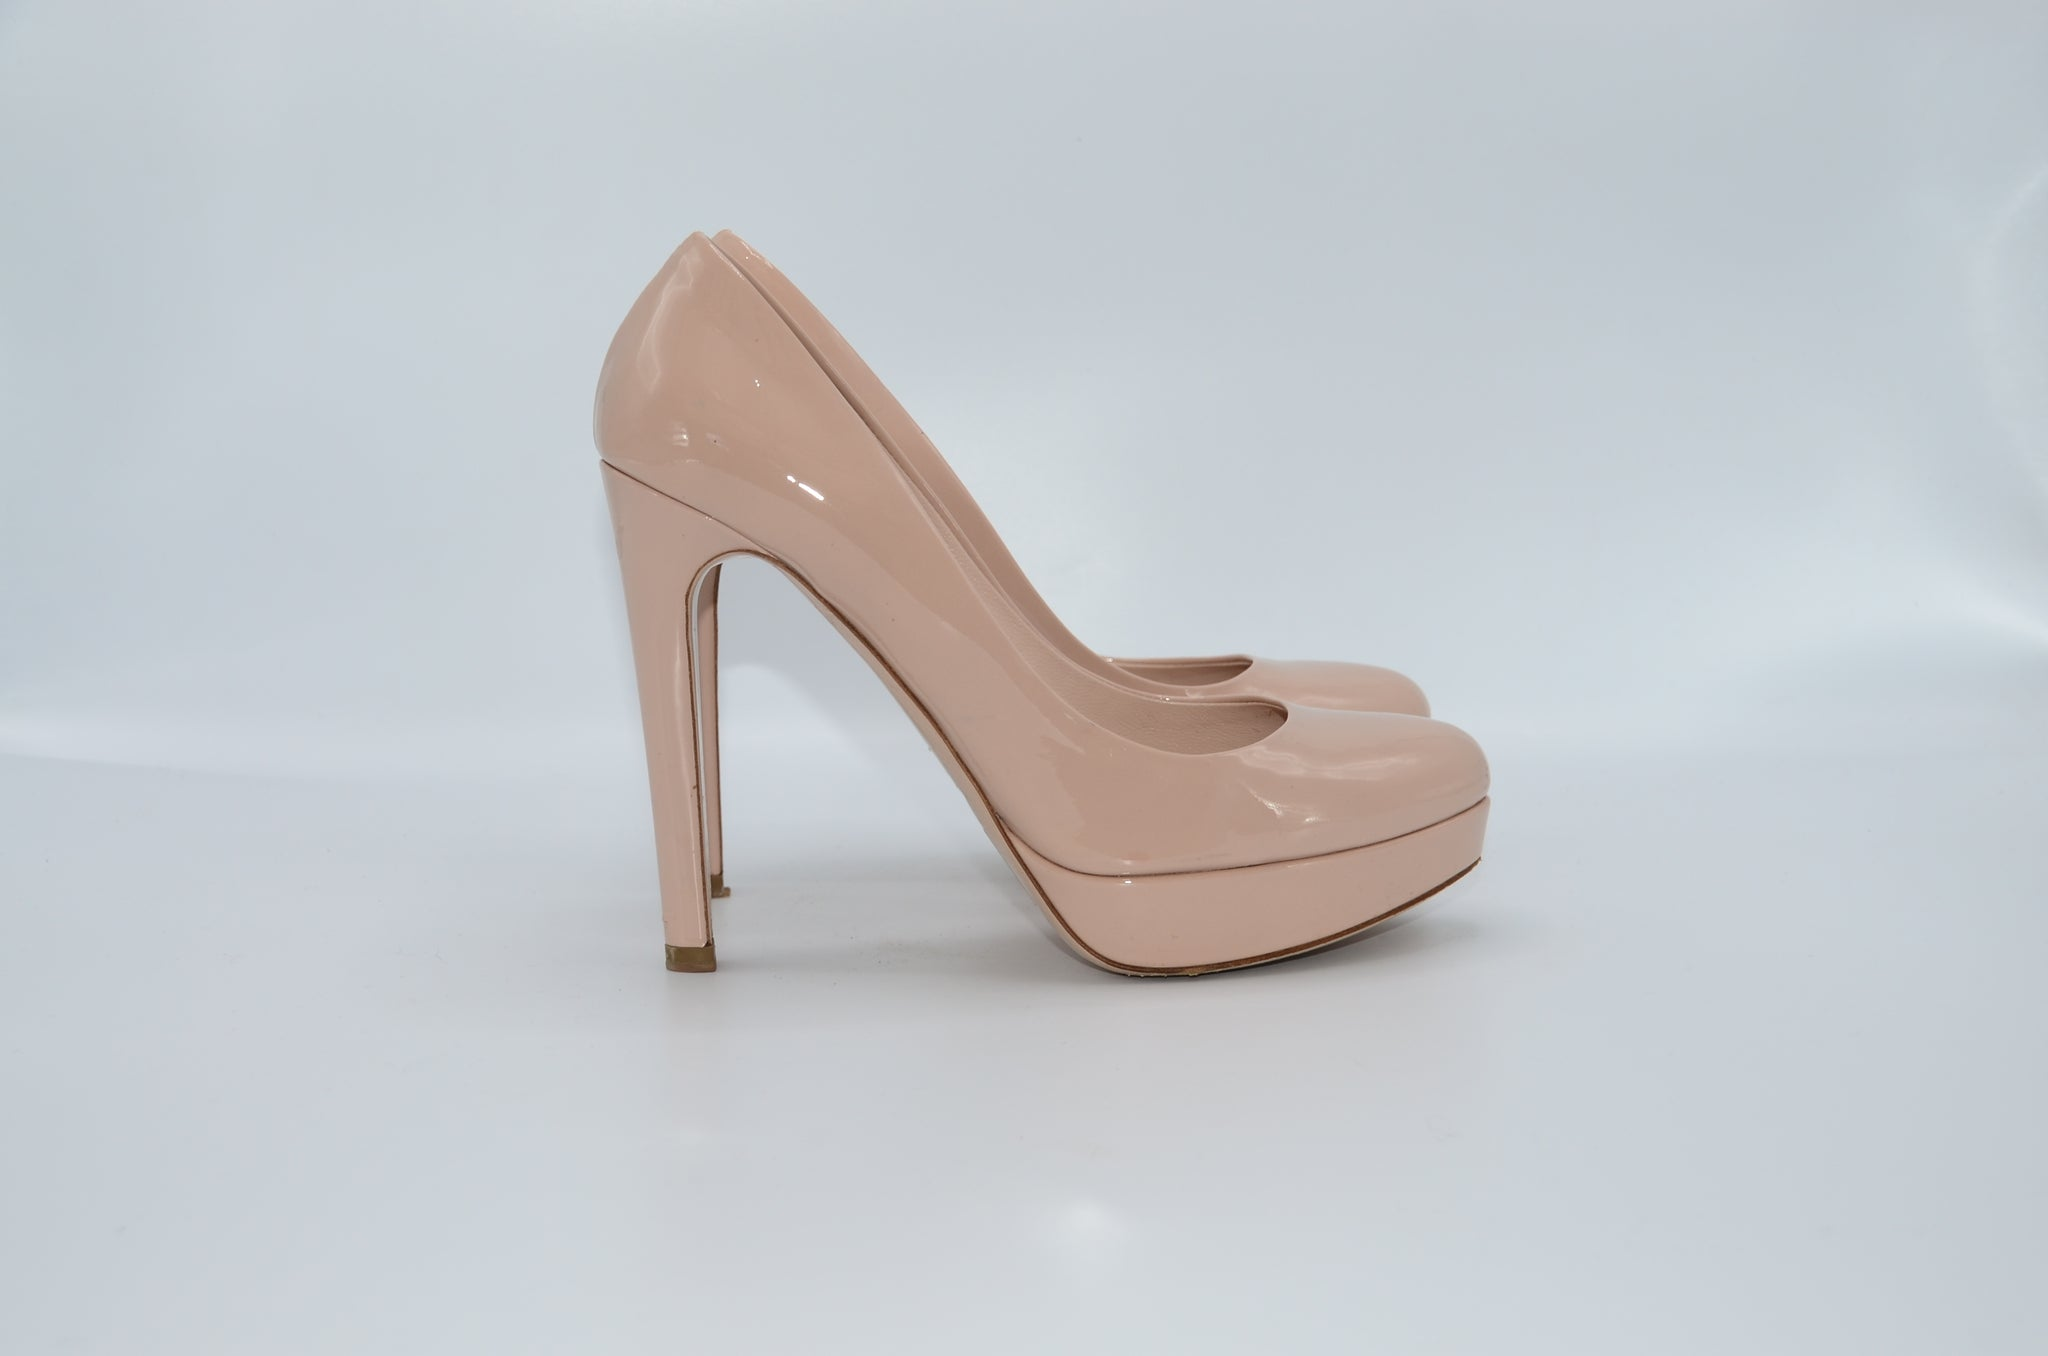 Miu Miu Nude Pump 38,5 - Iconics Preloved Luxury